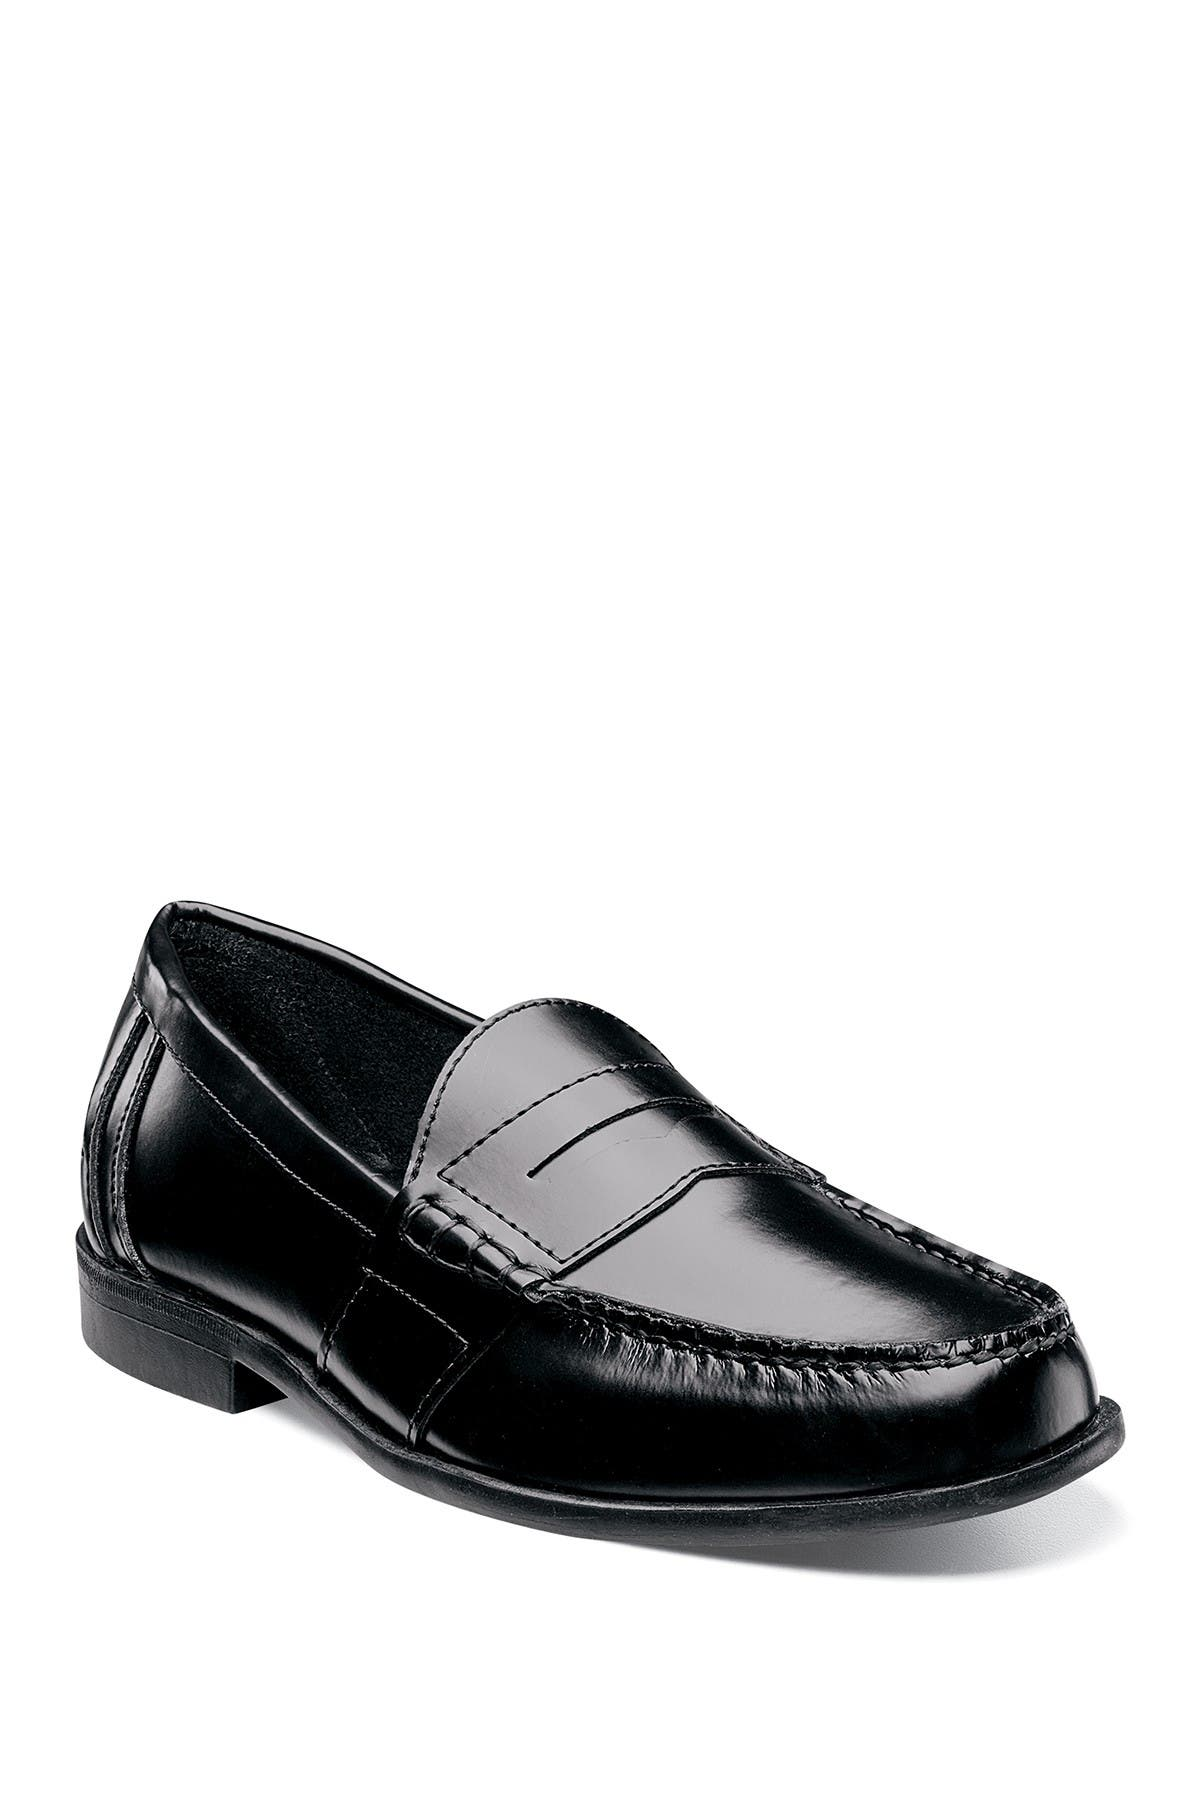 Image of NUNN BUSH Kent Moc Toe Penny Loafer - Wide Width Available